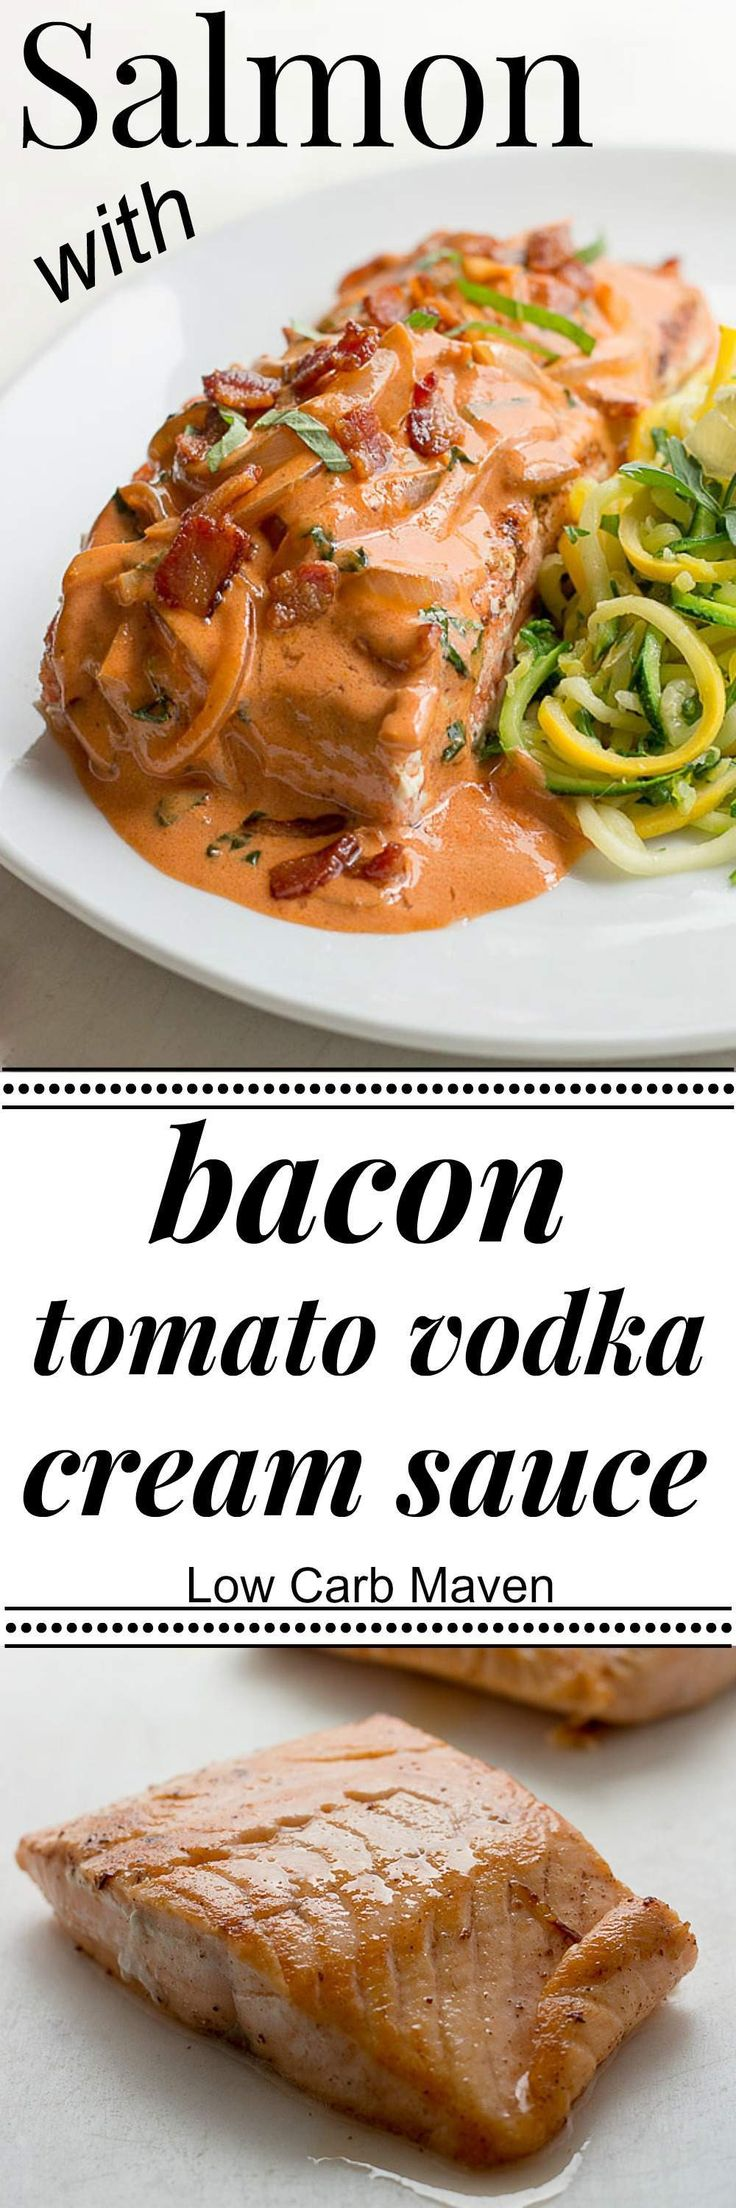 A sexy dish with a luxurious tomato vodka cream sauce featuring bacon! Ready in 20 minutes.